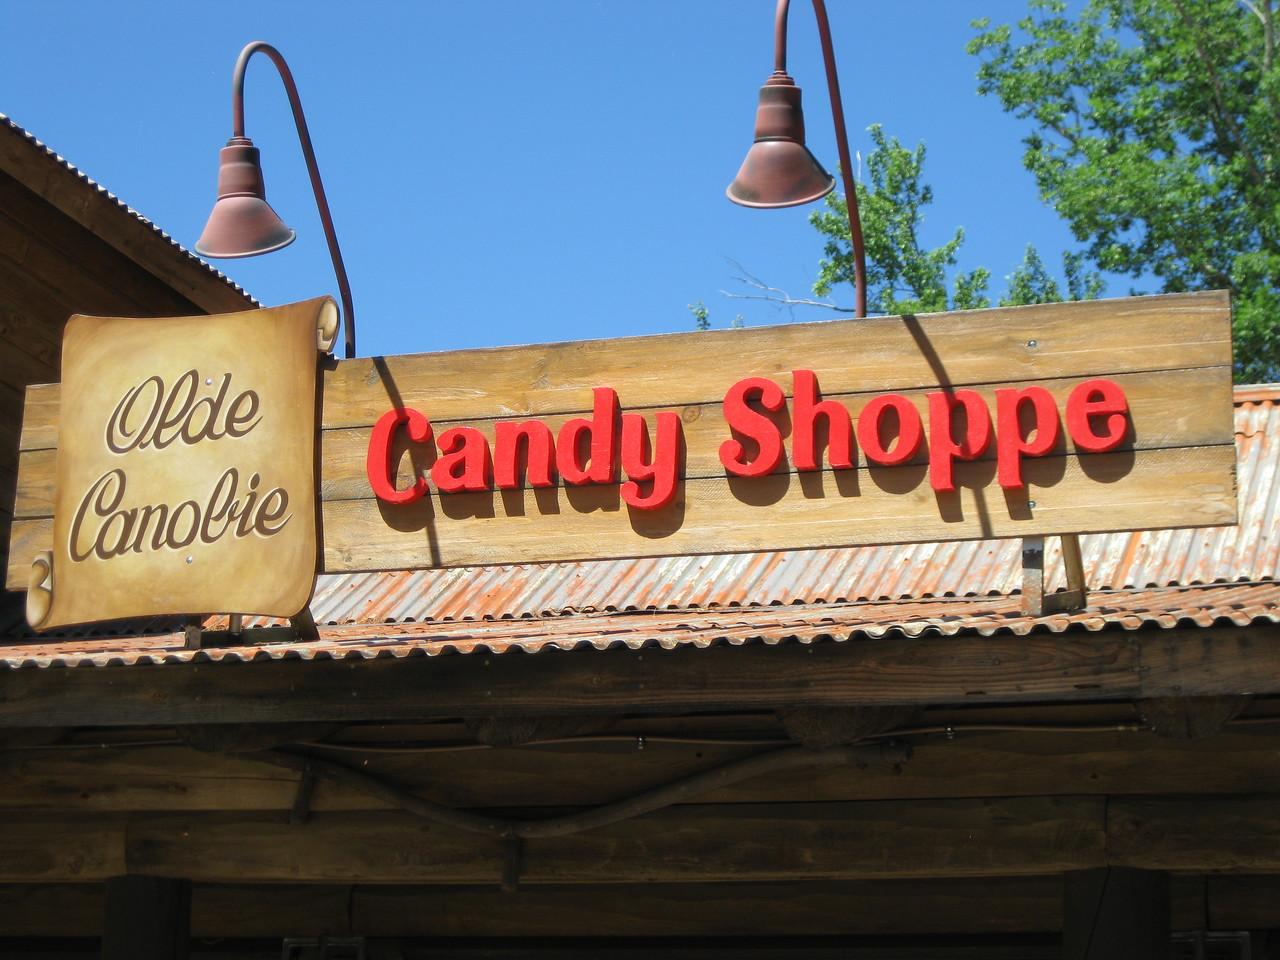 Candy Shoppe.